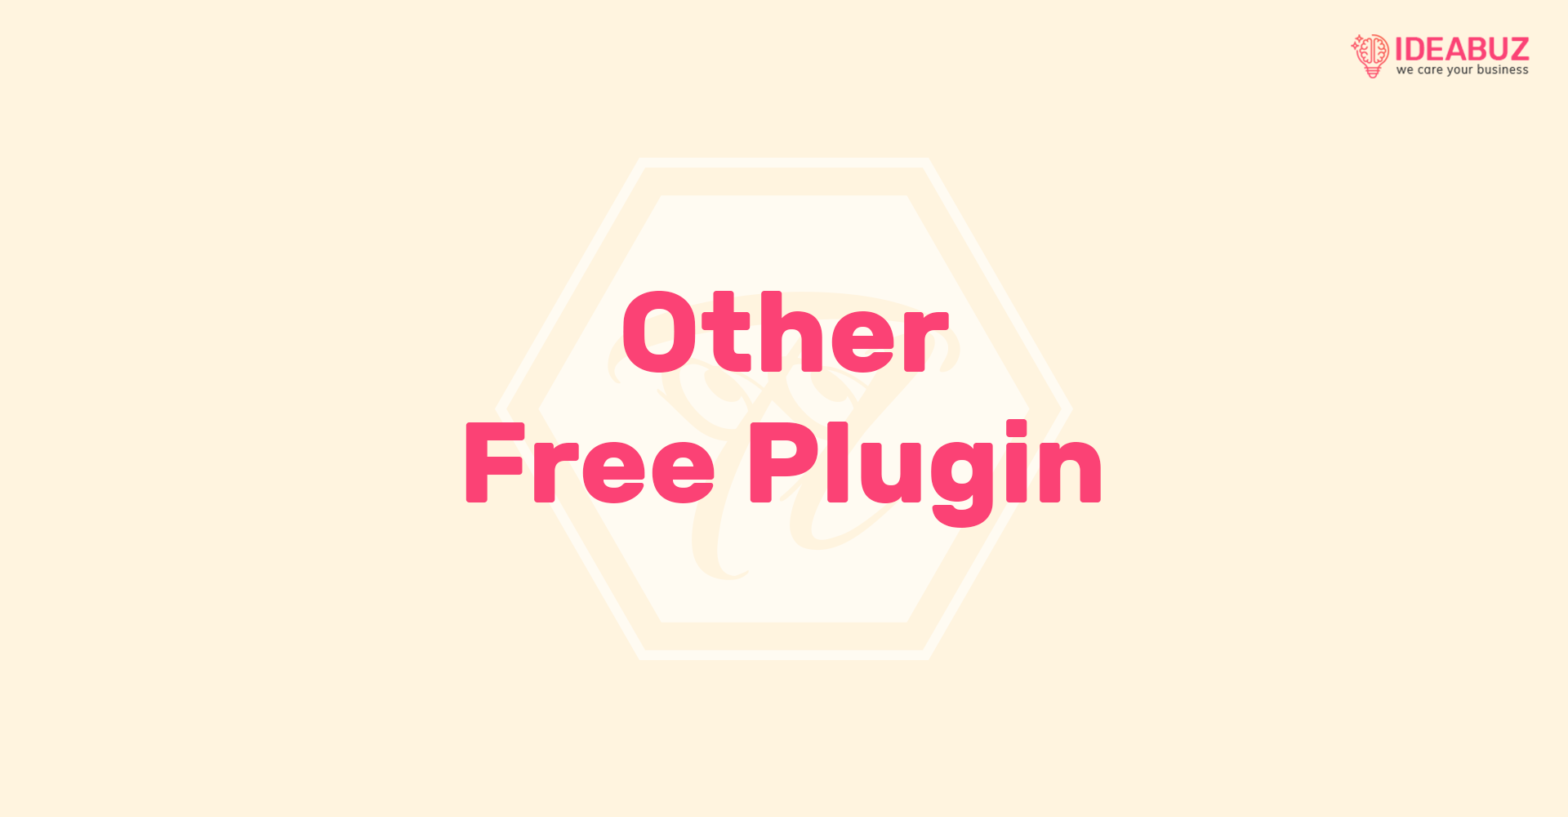 other_plugins 2 1568x817